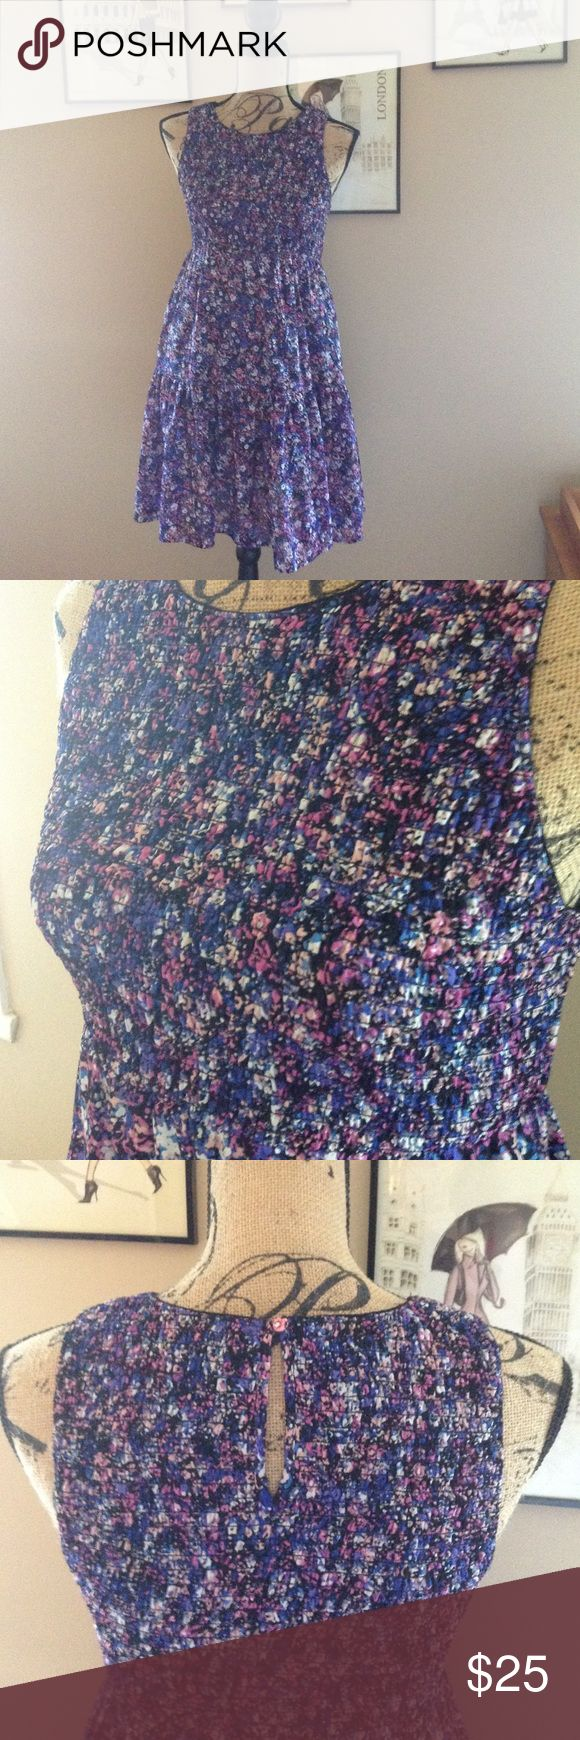 A purple, pink, white, and black printed dress A puckered elastic bodice. Entire dress is lined with black polyester. Sleeveless. 100% polyester. Skirt part had a ruffled bottom that is 11 inches long. Only worn twice. Vera Wang Dresses Midi